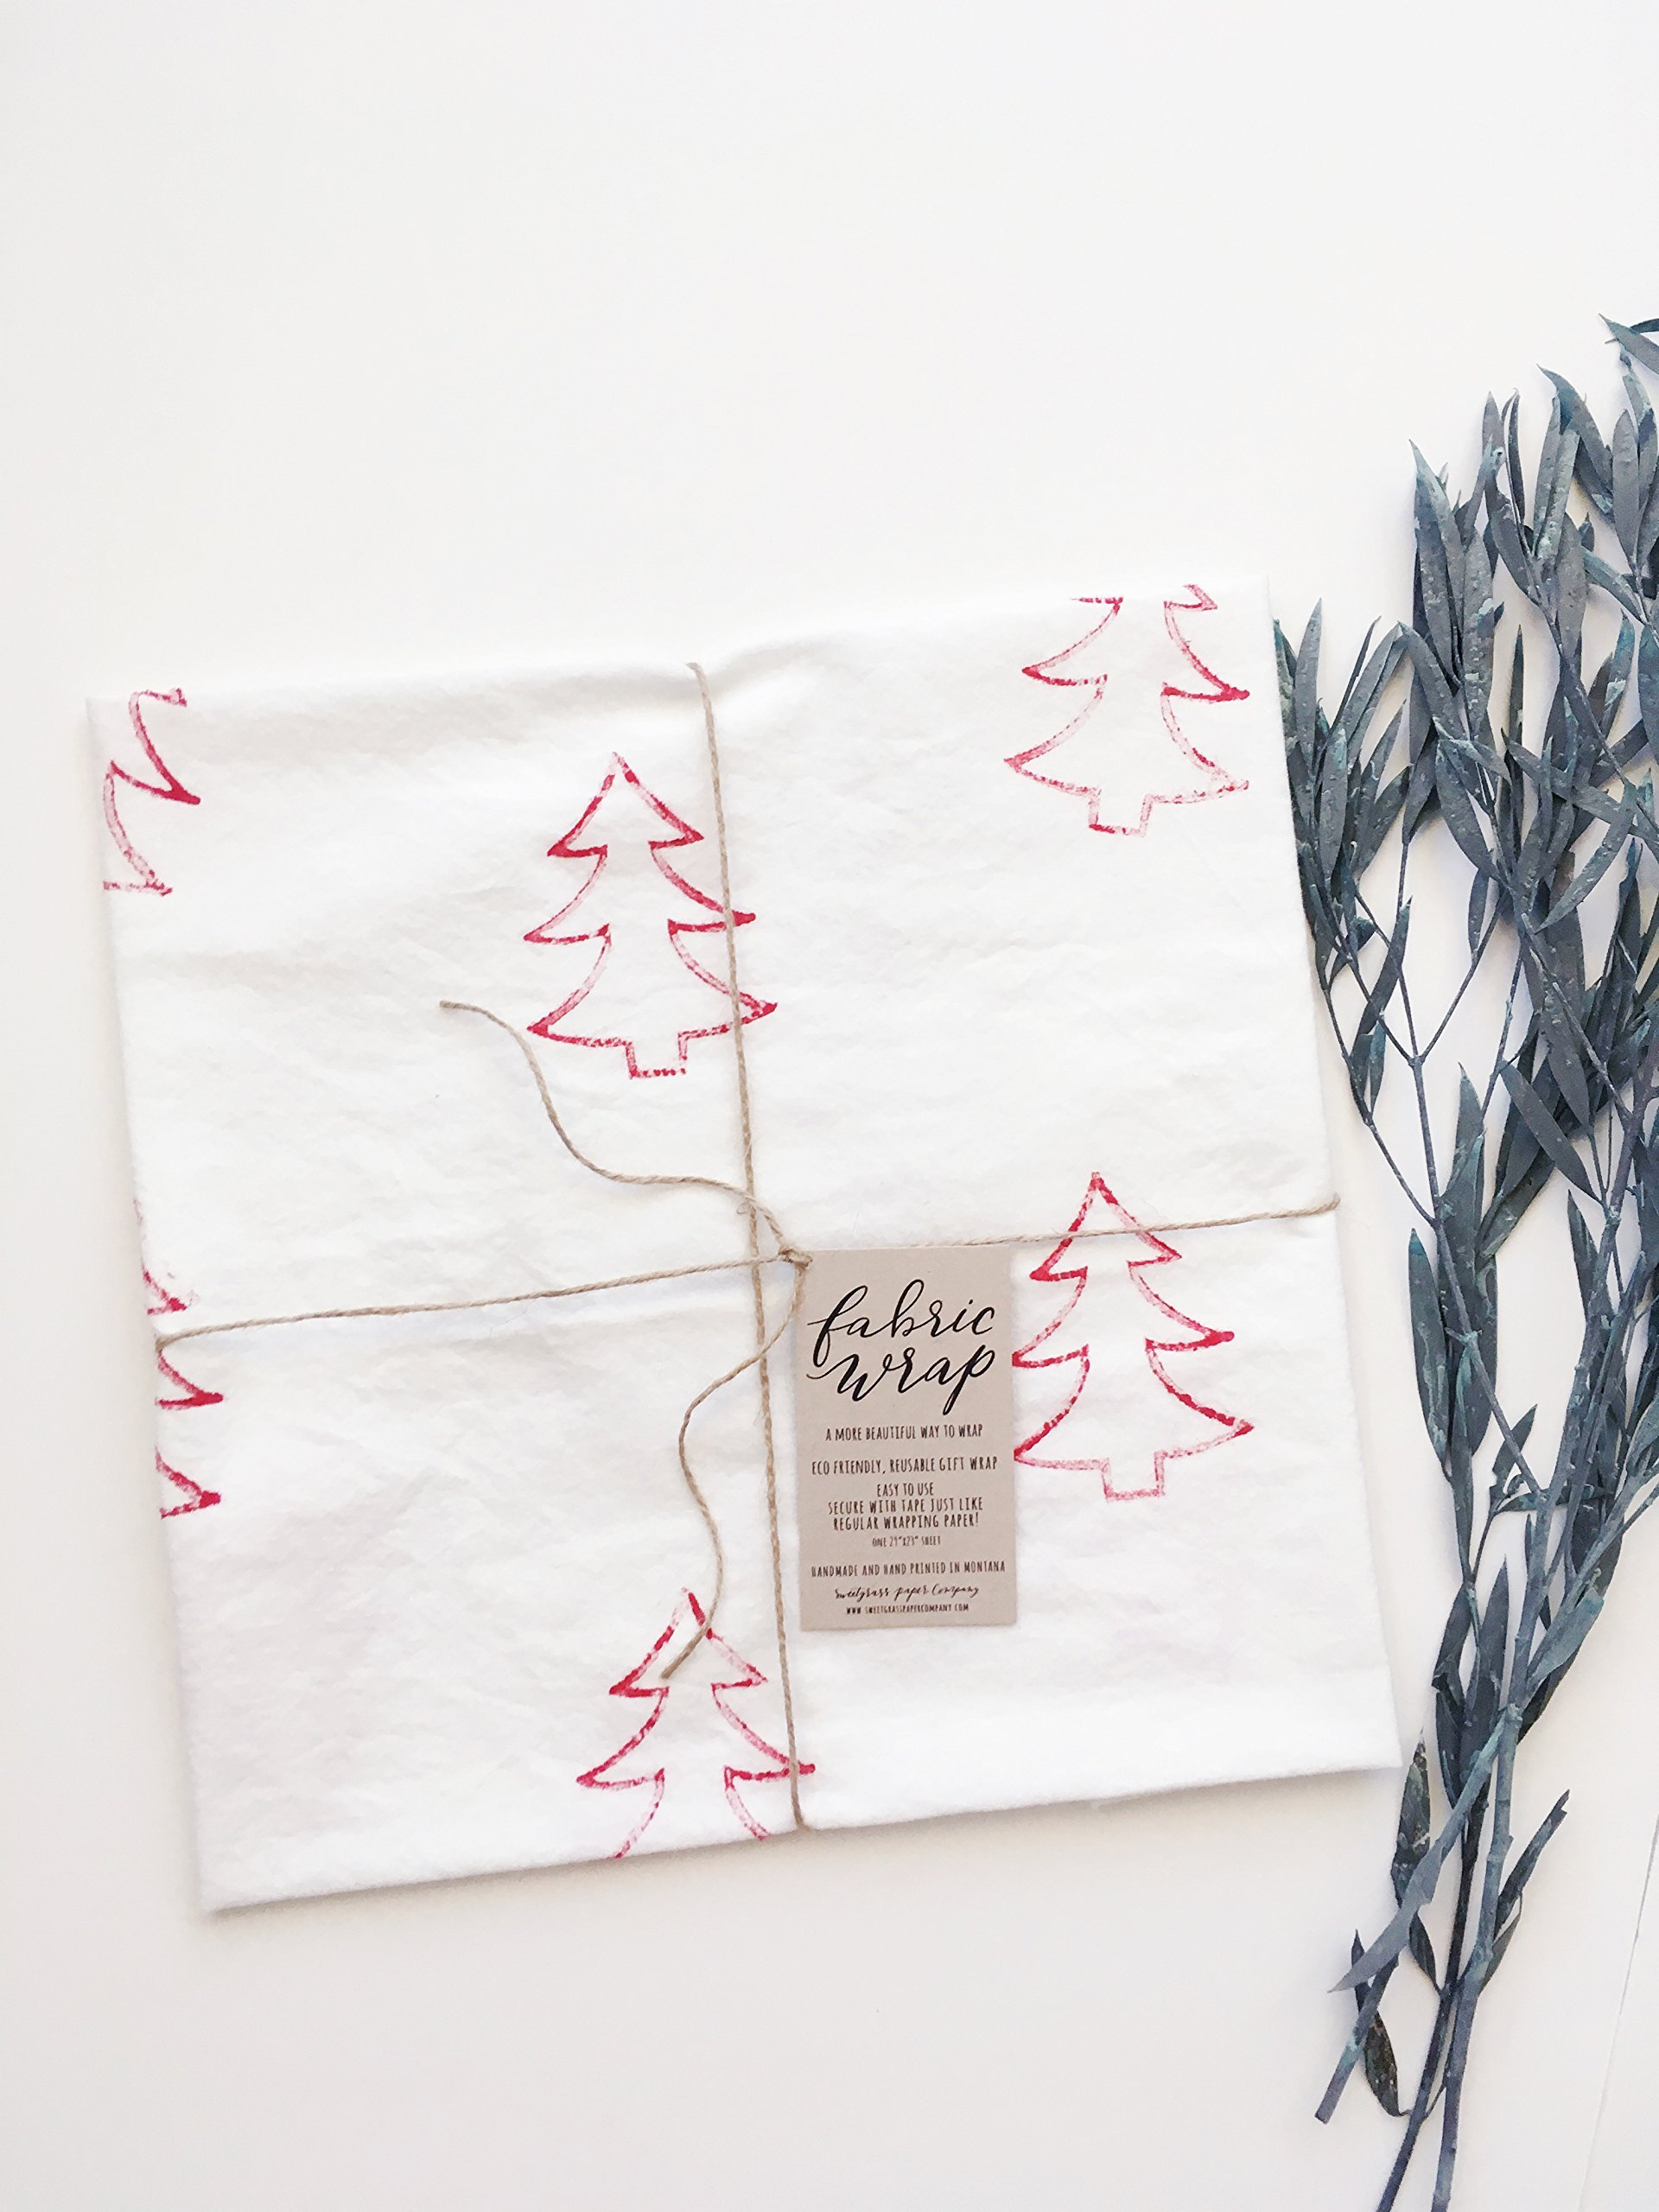 GIFT WRAP, Fabric Wrap™, Red Christmas trees, eco friendly reusable, holiday, present, natural, rustic, farmhouse, cottage Active by Sweetgrass Paper Company